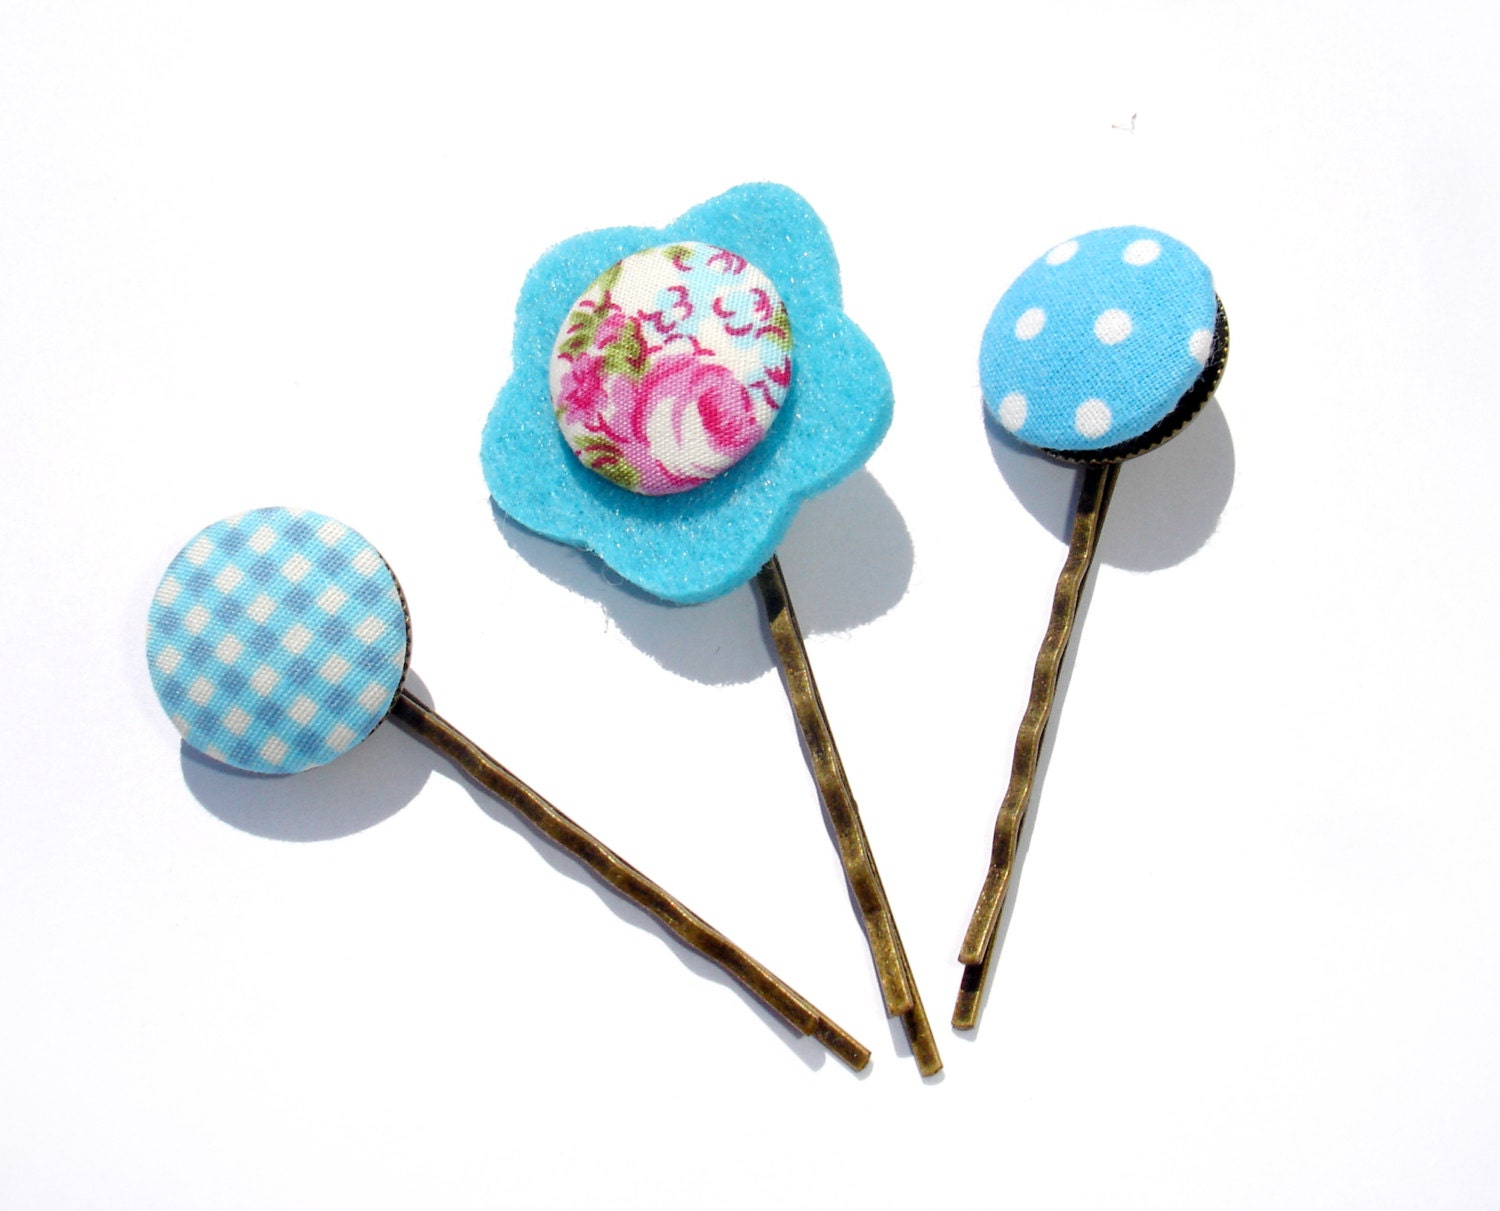 Blue Hair Pin // Handmade Fabric buttons hair clips //  Set of 3 // Polka Dots // Summer Hairpins set - ScrapCati